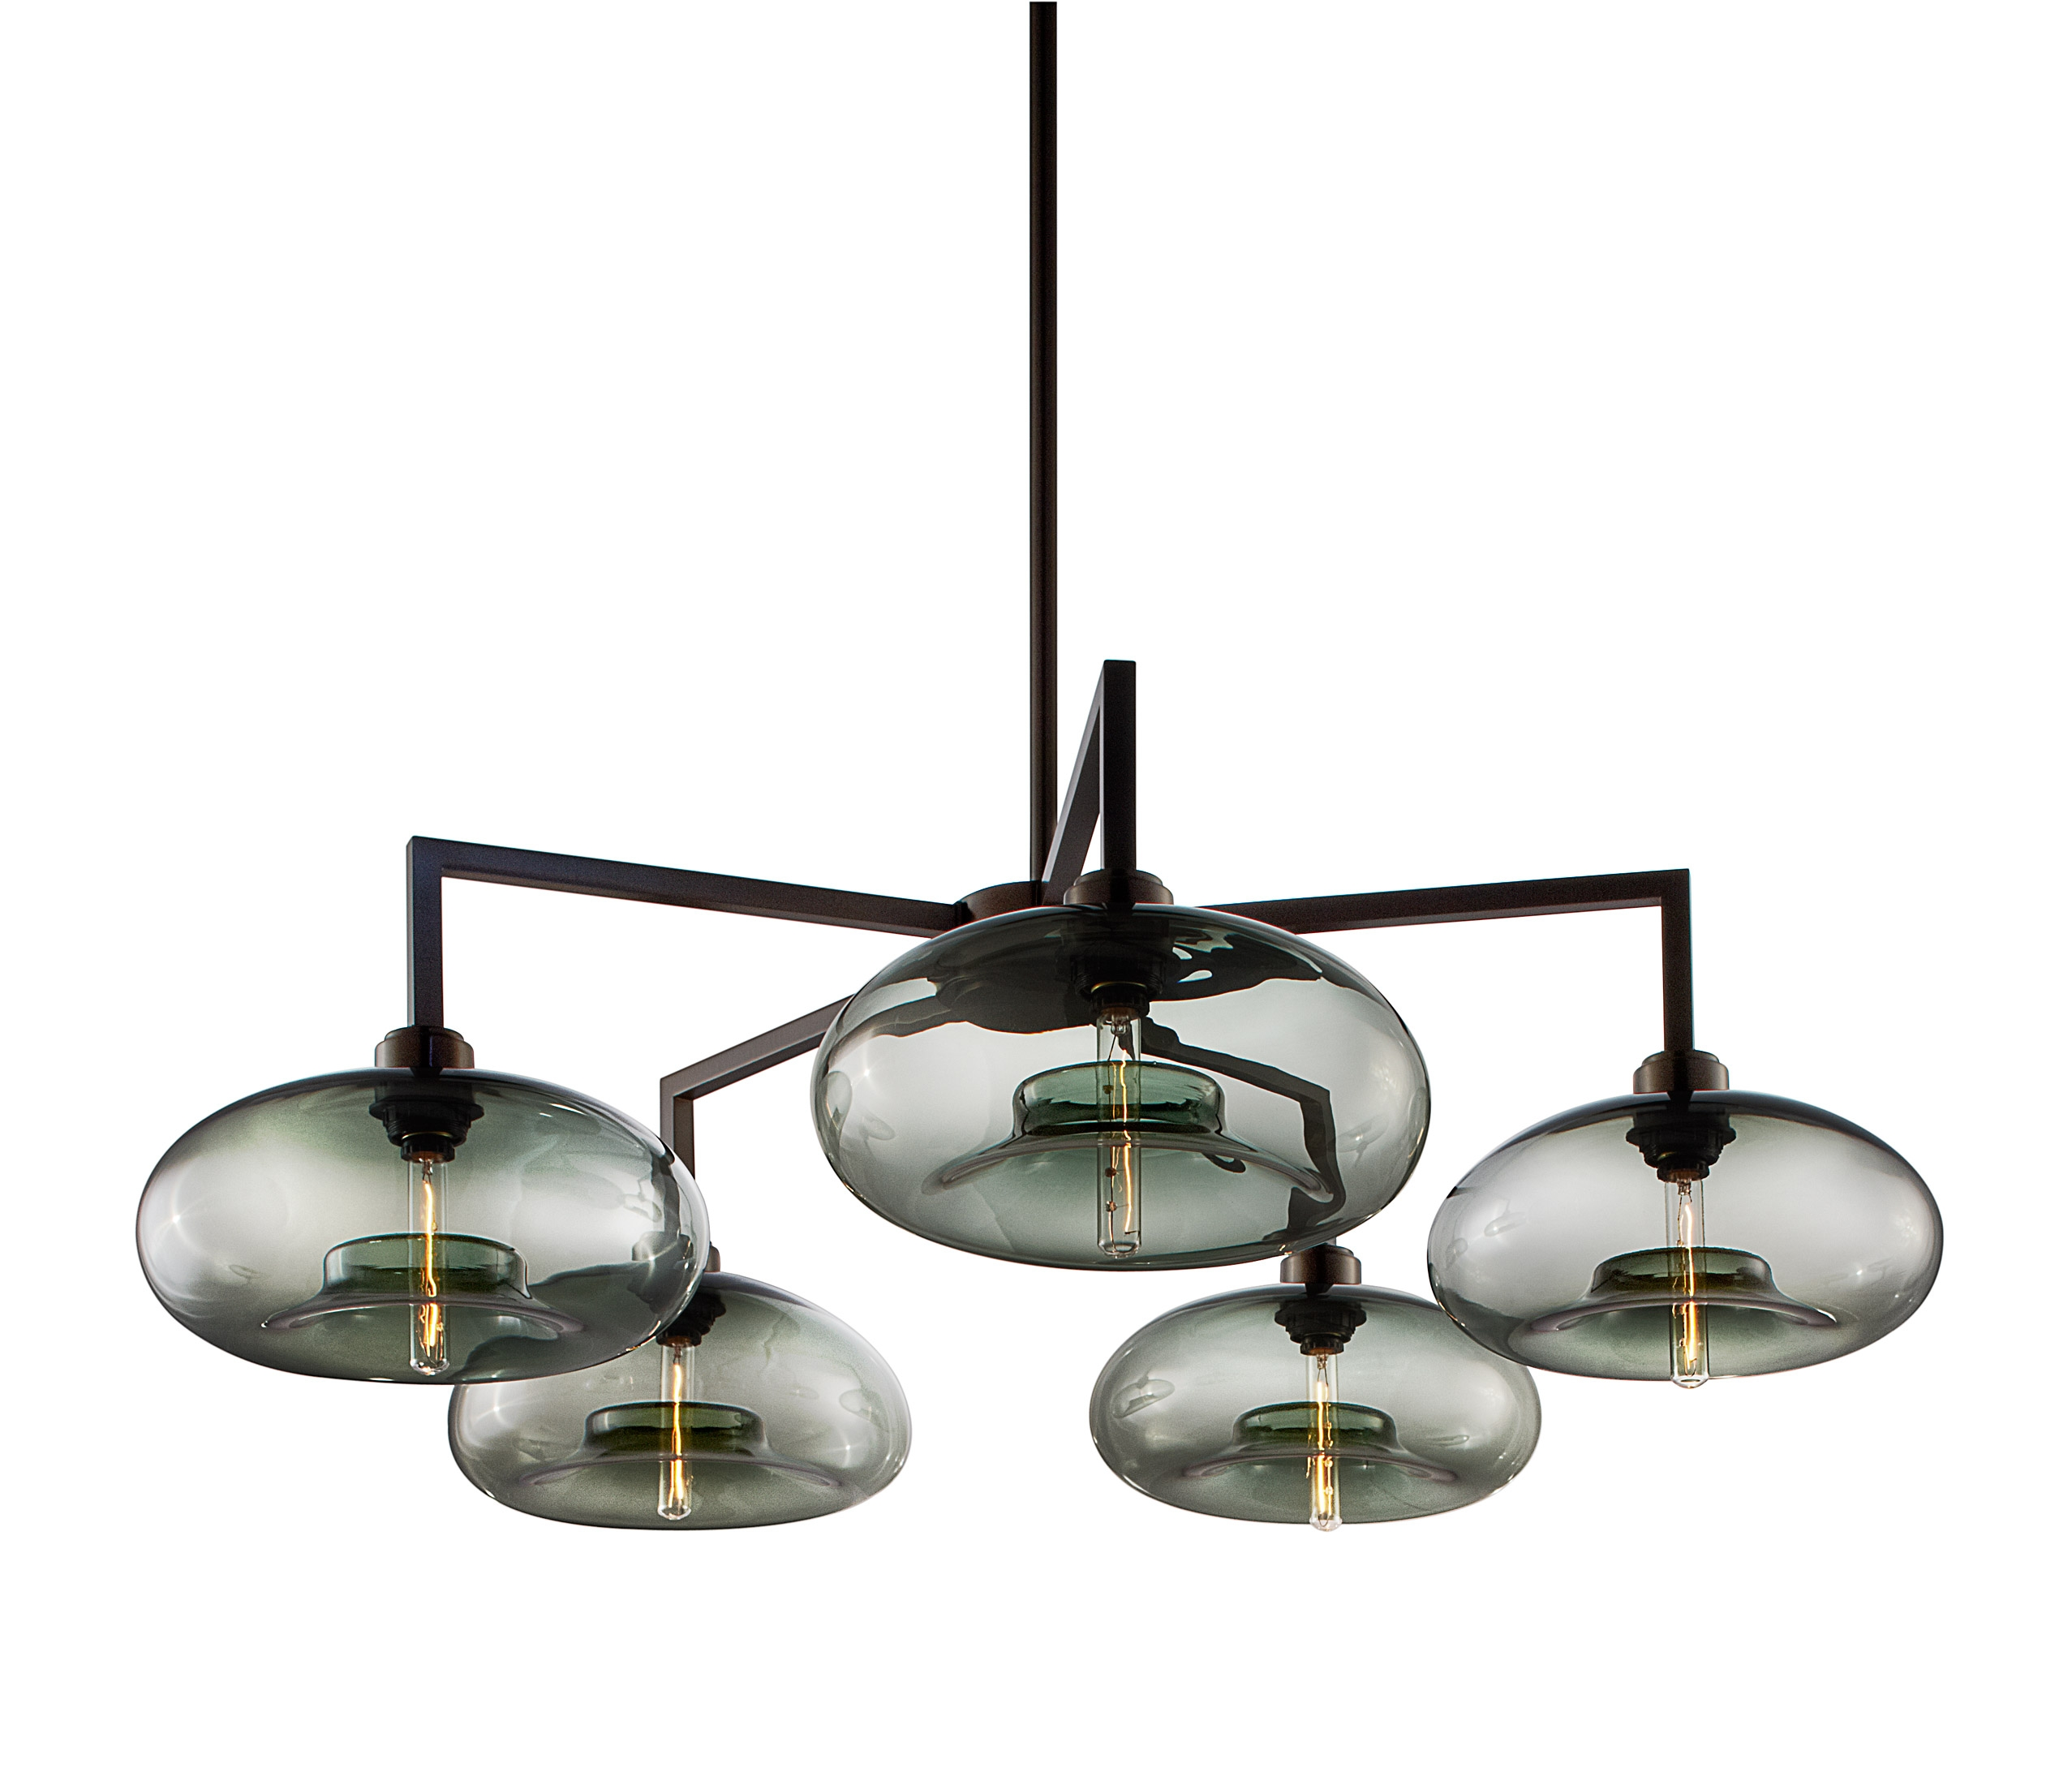 Quill 5 Modern Chandelier On Designer Pages Throughout Modern Chandelier (#12 of 12)